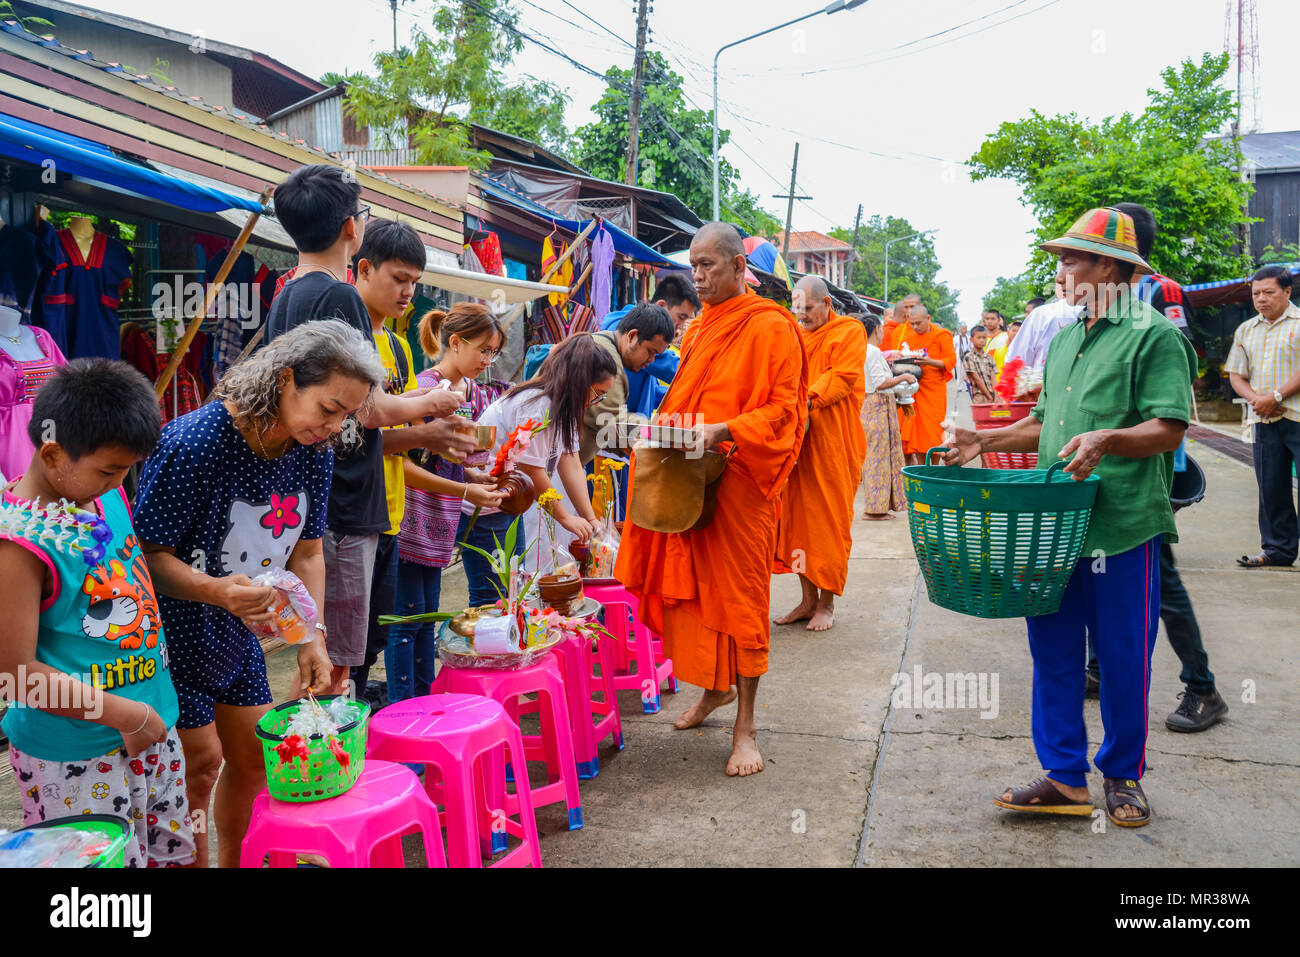 Kanchanaburi, Thailand - July 23, 2016: People offering food and things to group of Buddhist monks in morning on rural street in Kanchanaburi, Thailan - Stock Image